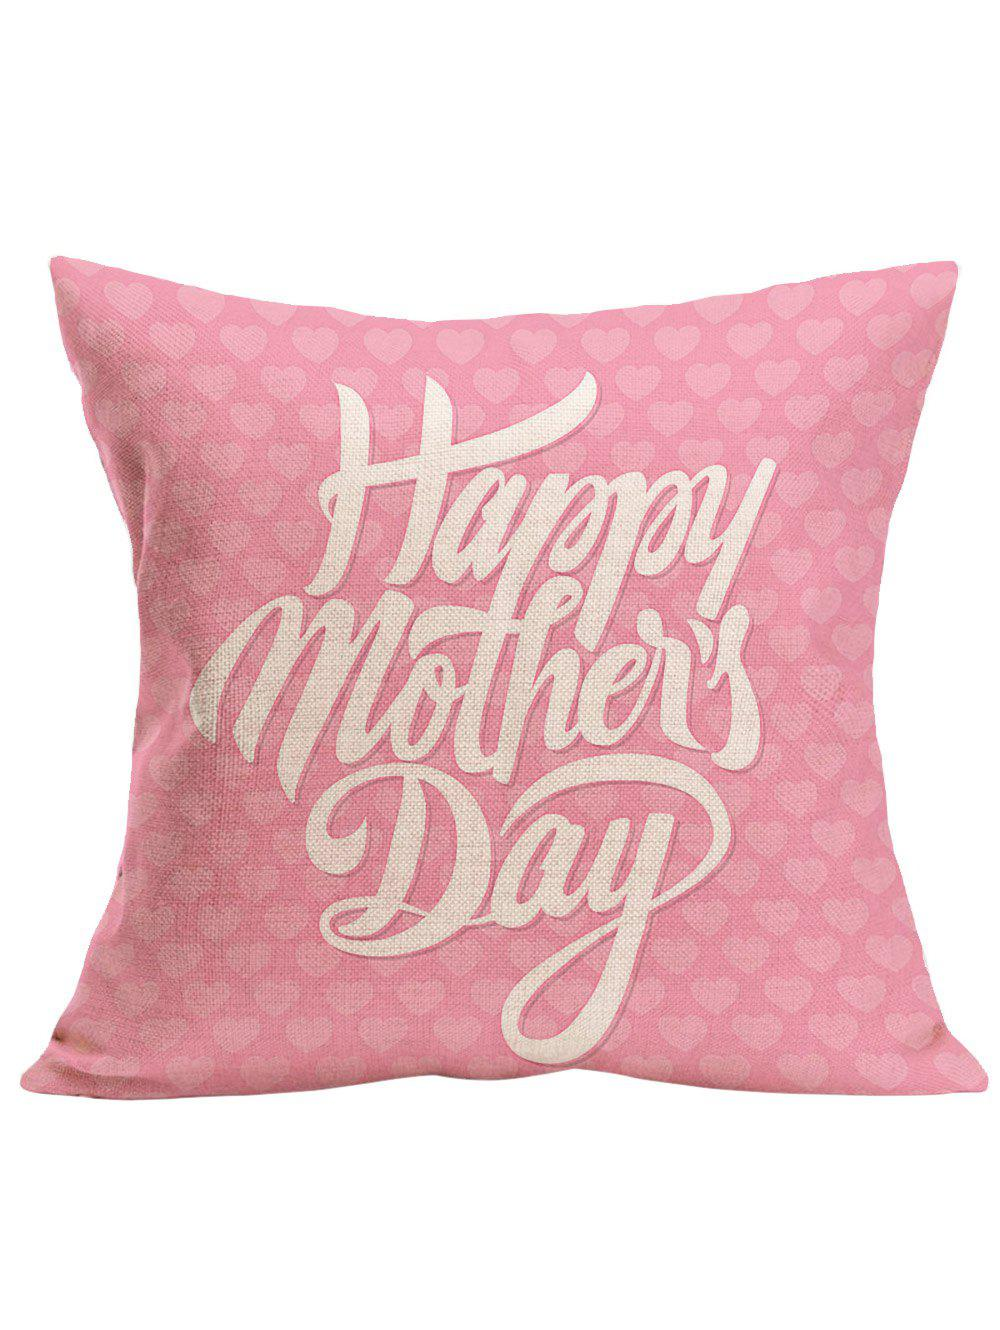 Happy Mothers Day Printed Pillow CaseHOME<br><br>Size: 43*43CM; Color: LIGHT PINK; Material: Polyester / Cotton; Fabric Type: Linen; Pattern: Letter; Style: Modern/Contemporary; Shape: Square; Size(CM): 43 x 43 CM; Weight: 0.1000kg; Package Contents: 1 x Pillow Case;